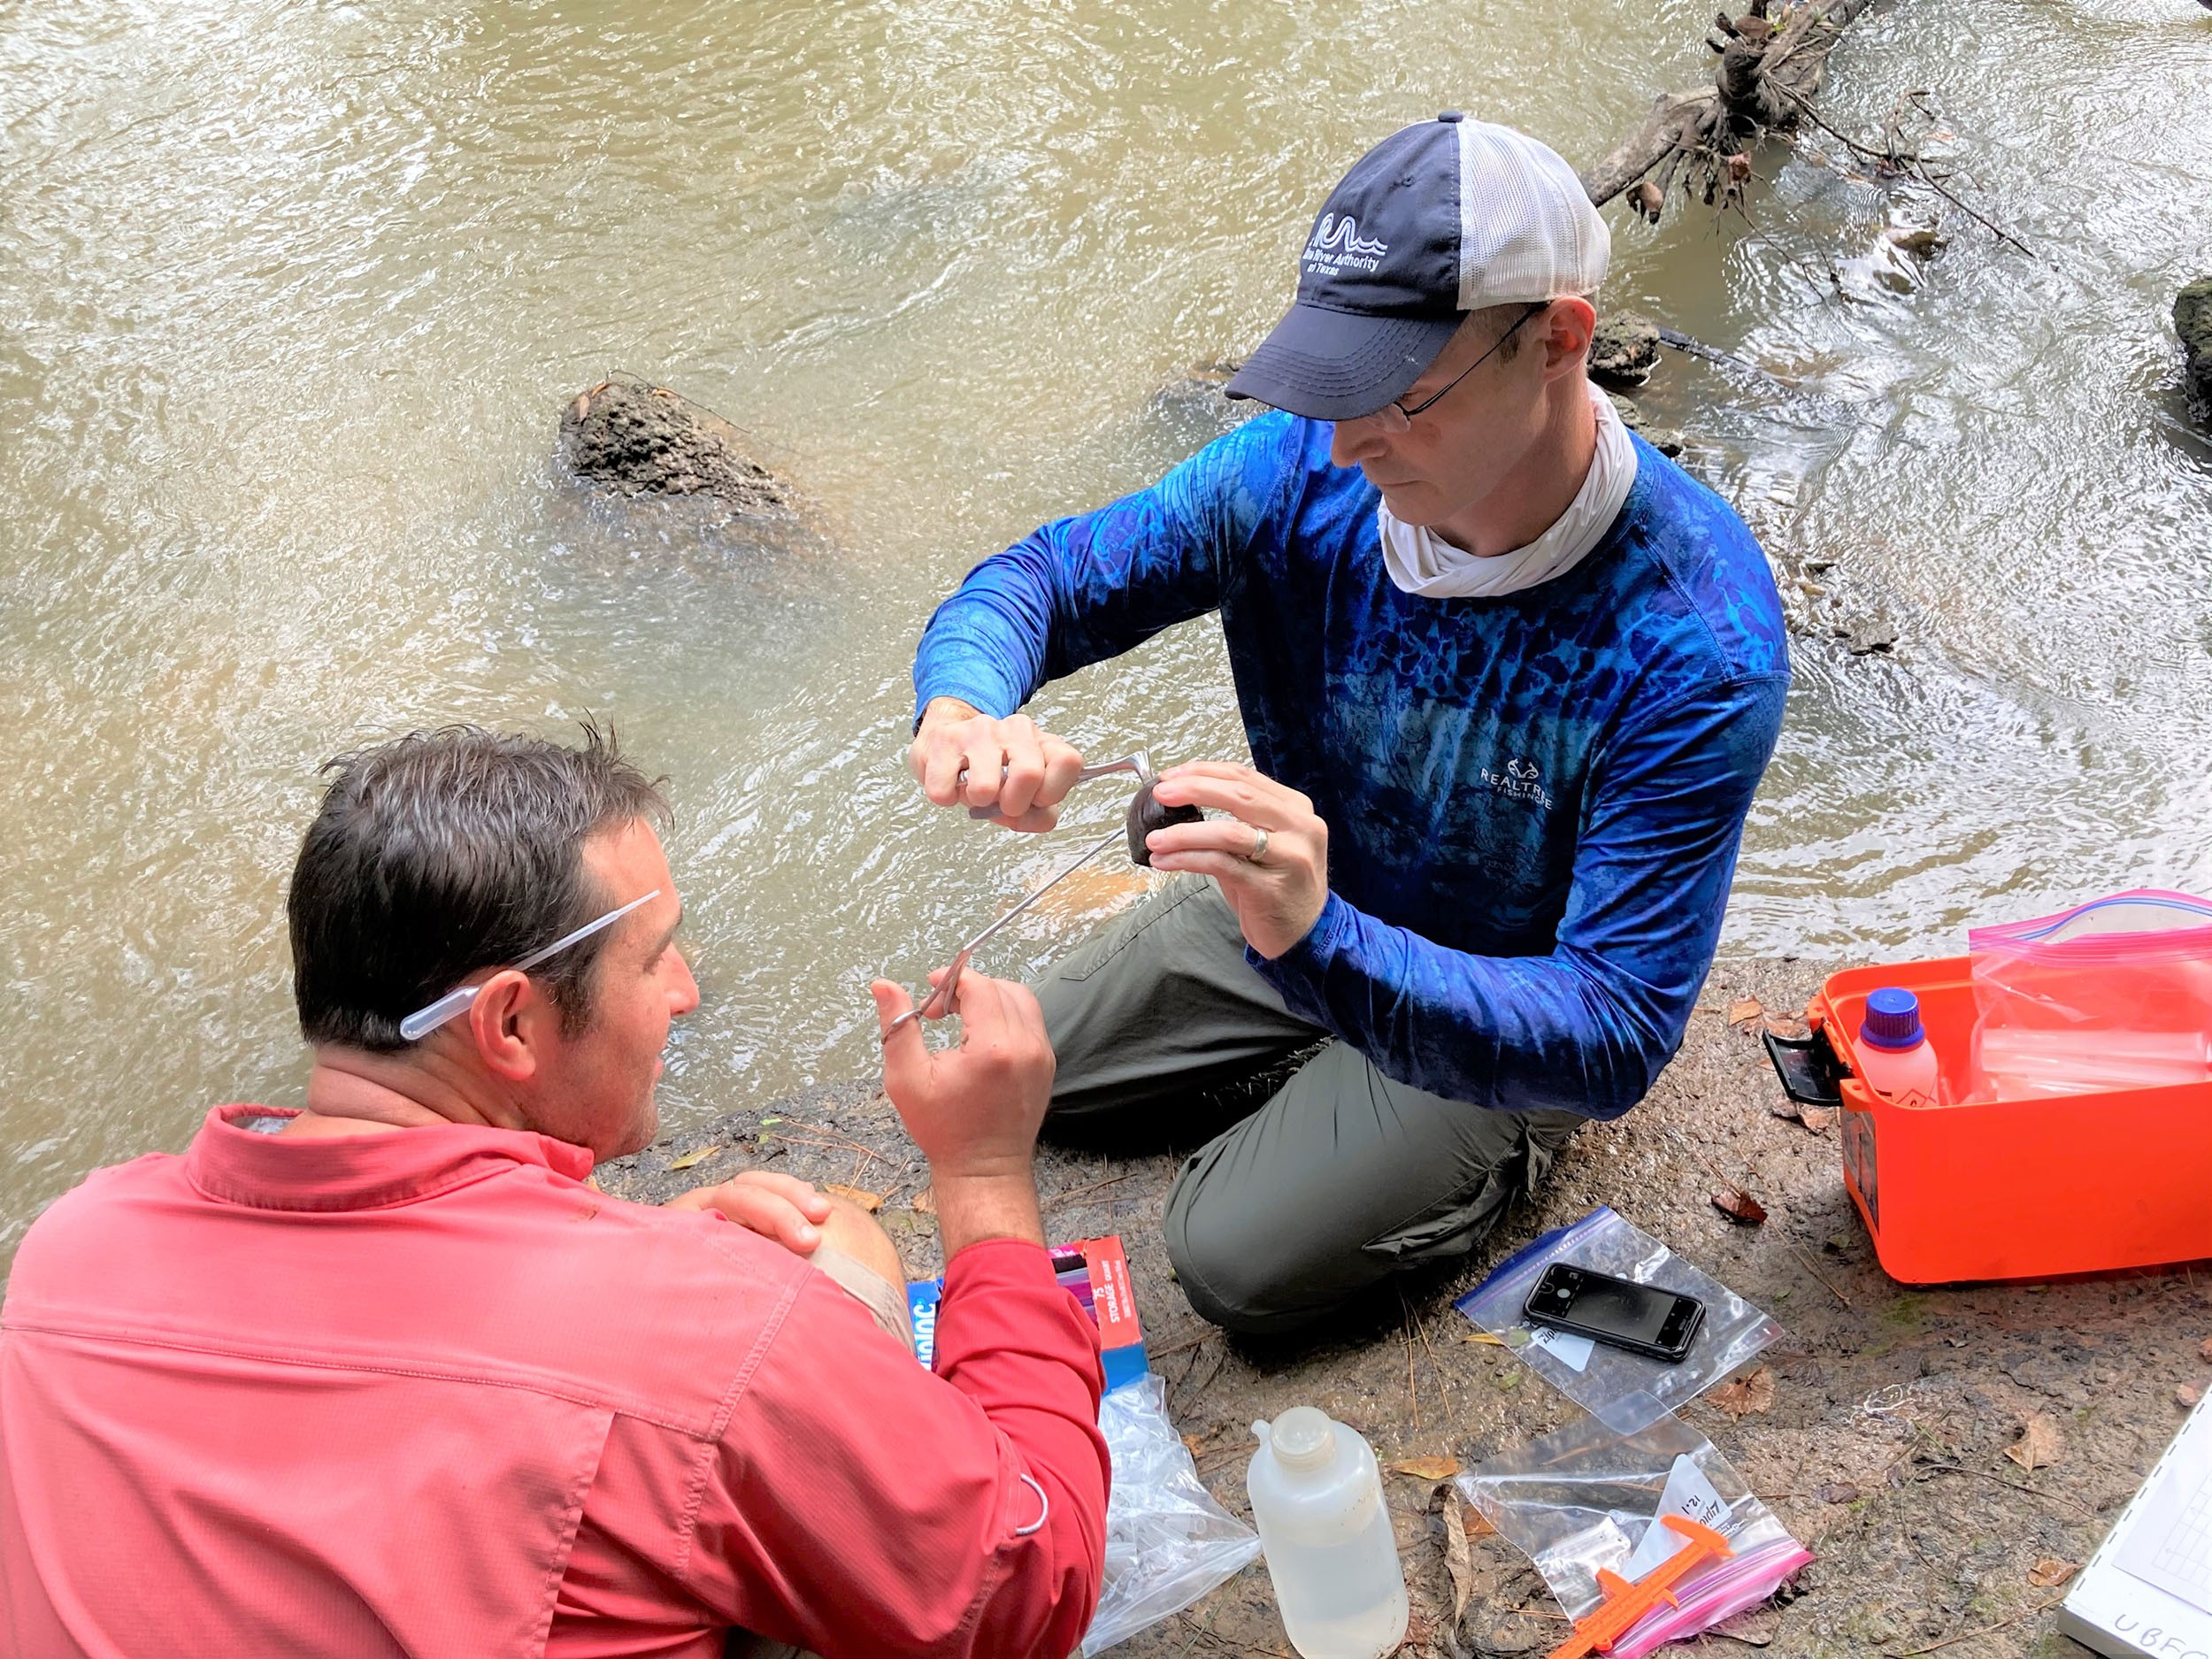 2 men kneel on muddy riverbank surrounded by bottles, cand, etc.; one holds muttel